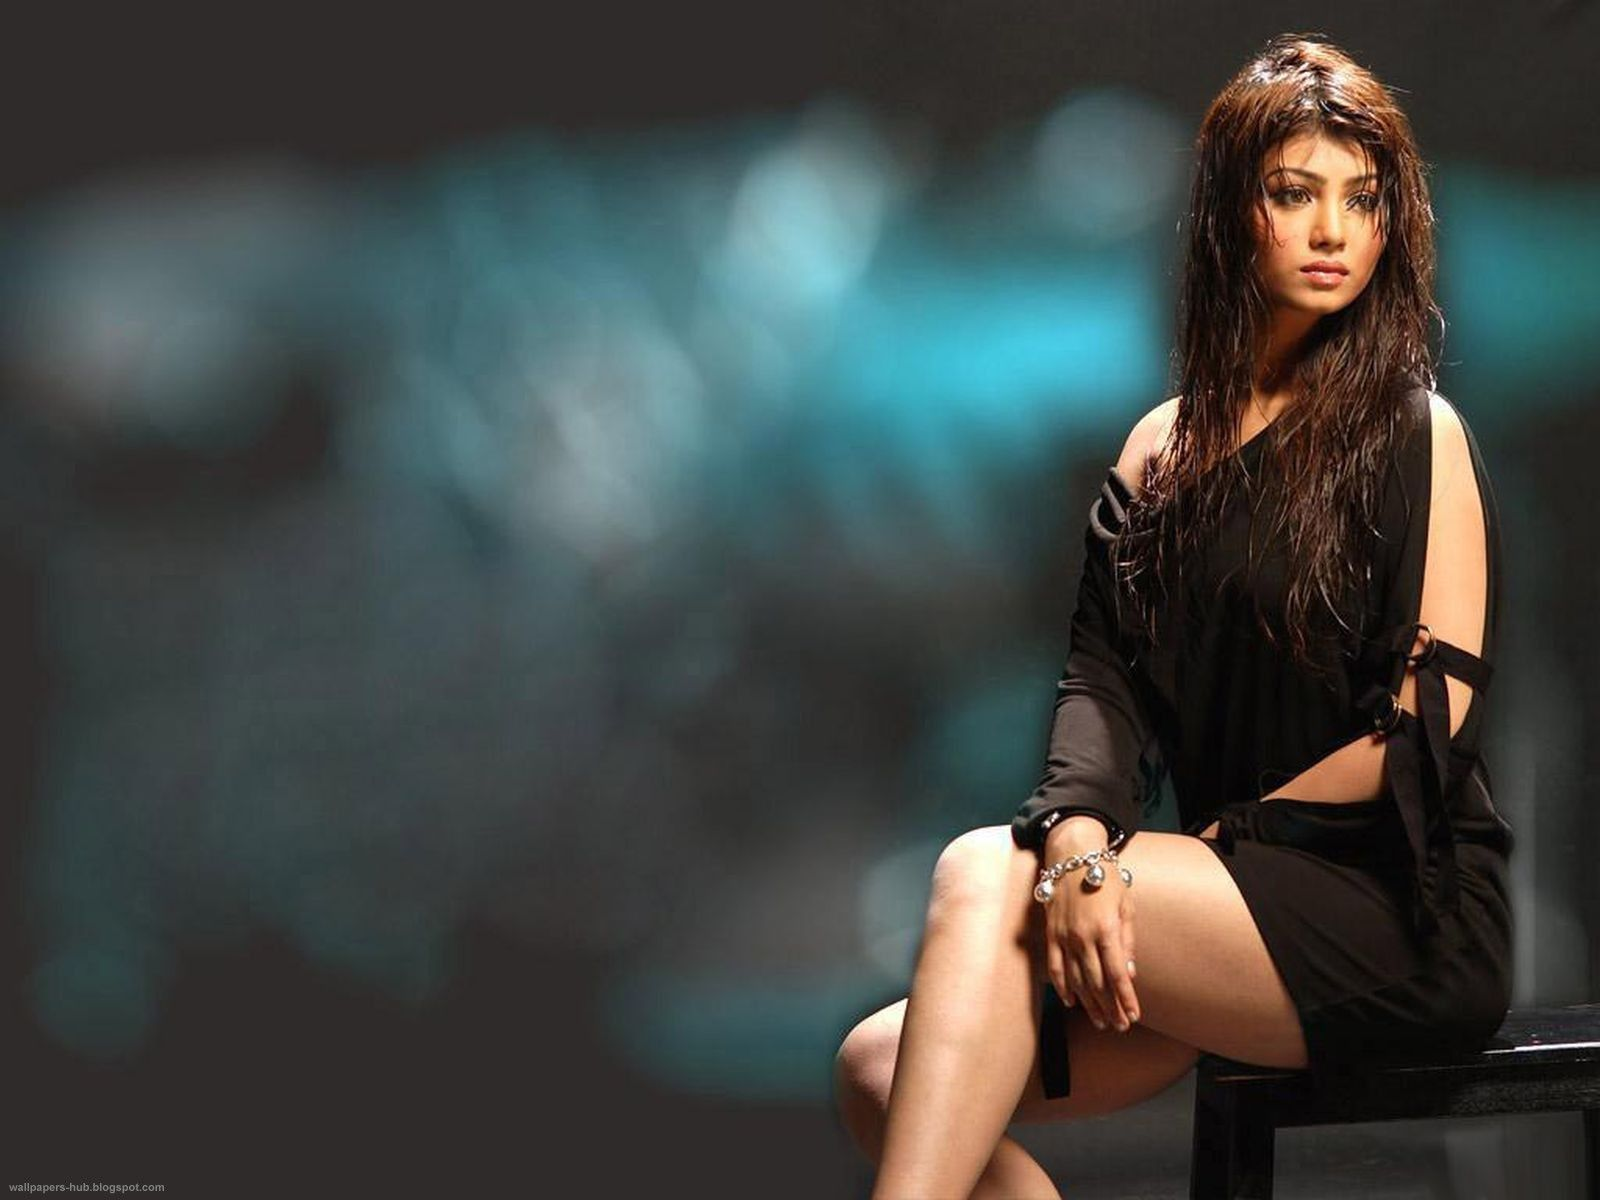 Ayesha takia wallpapers high resolution and quality download - High resolution wallpaper celebrity ...